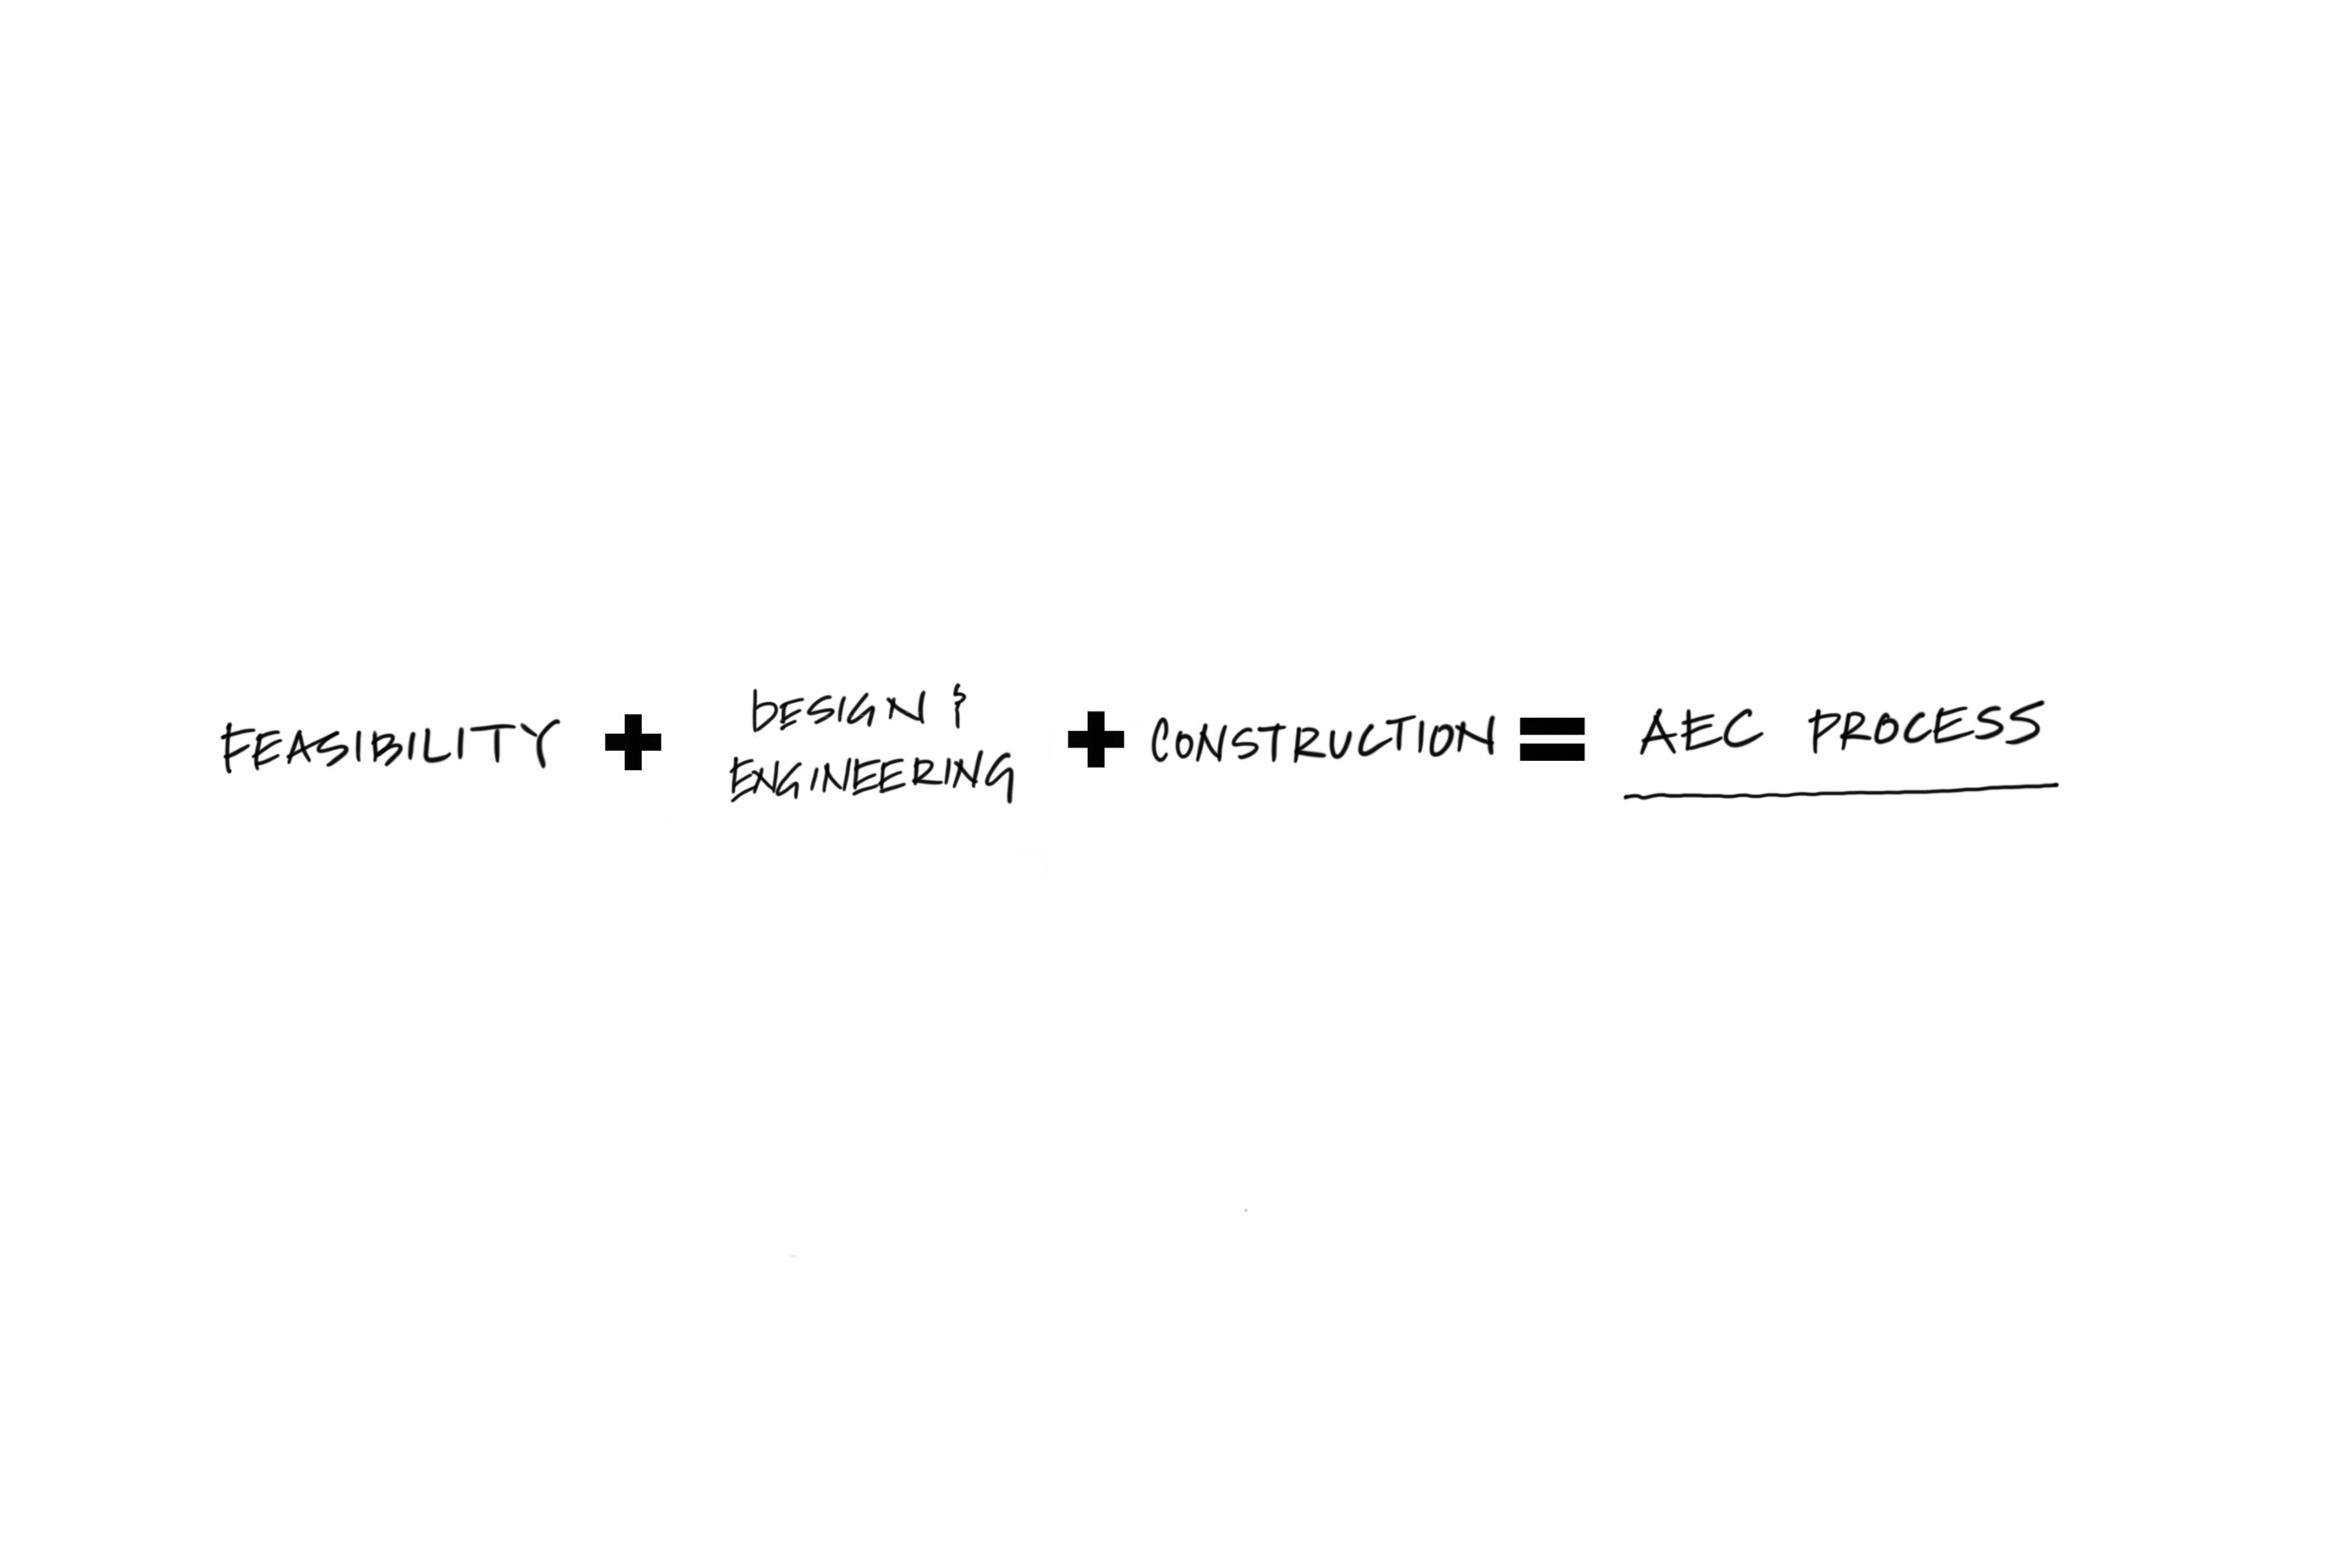 A chart that reads feasibility + design & engineering + construction = aec process